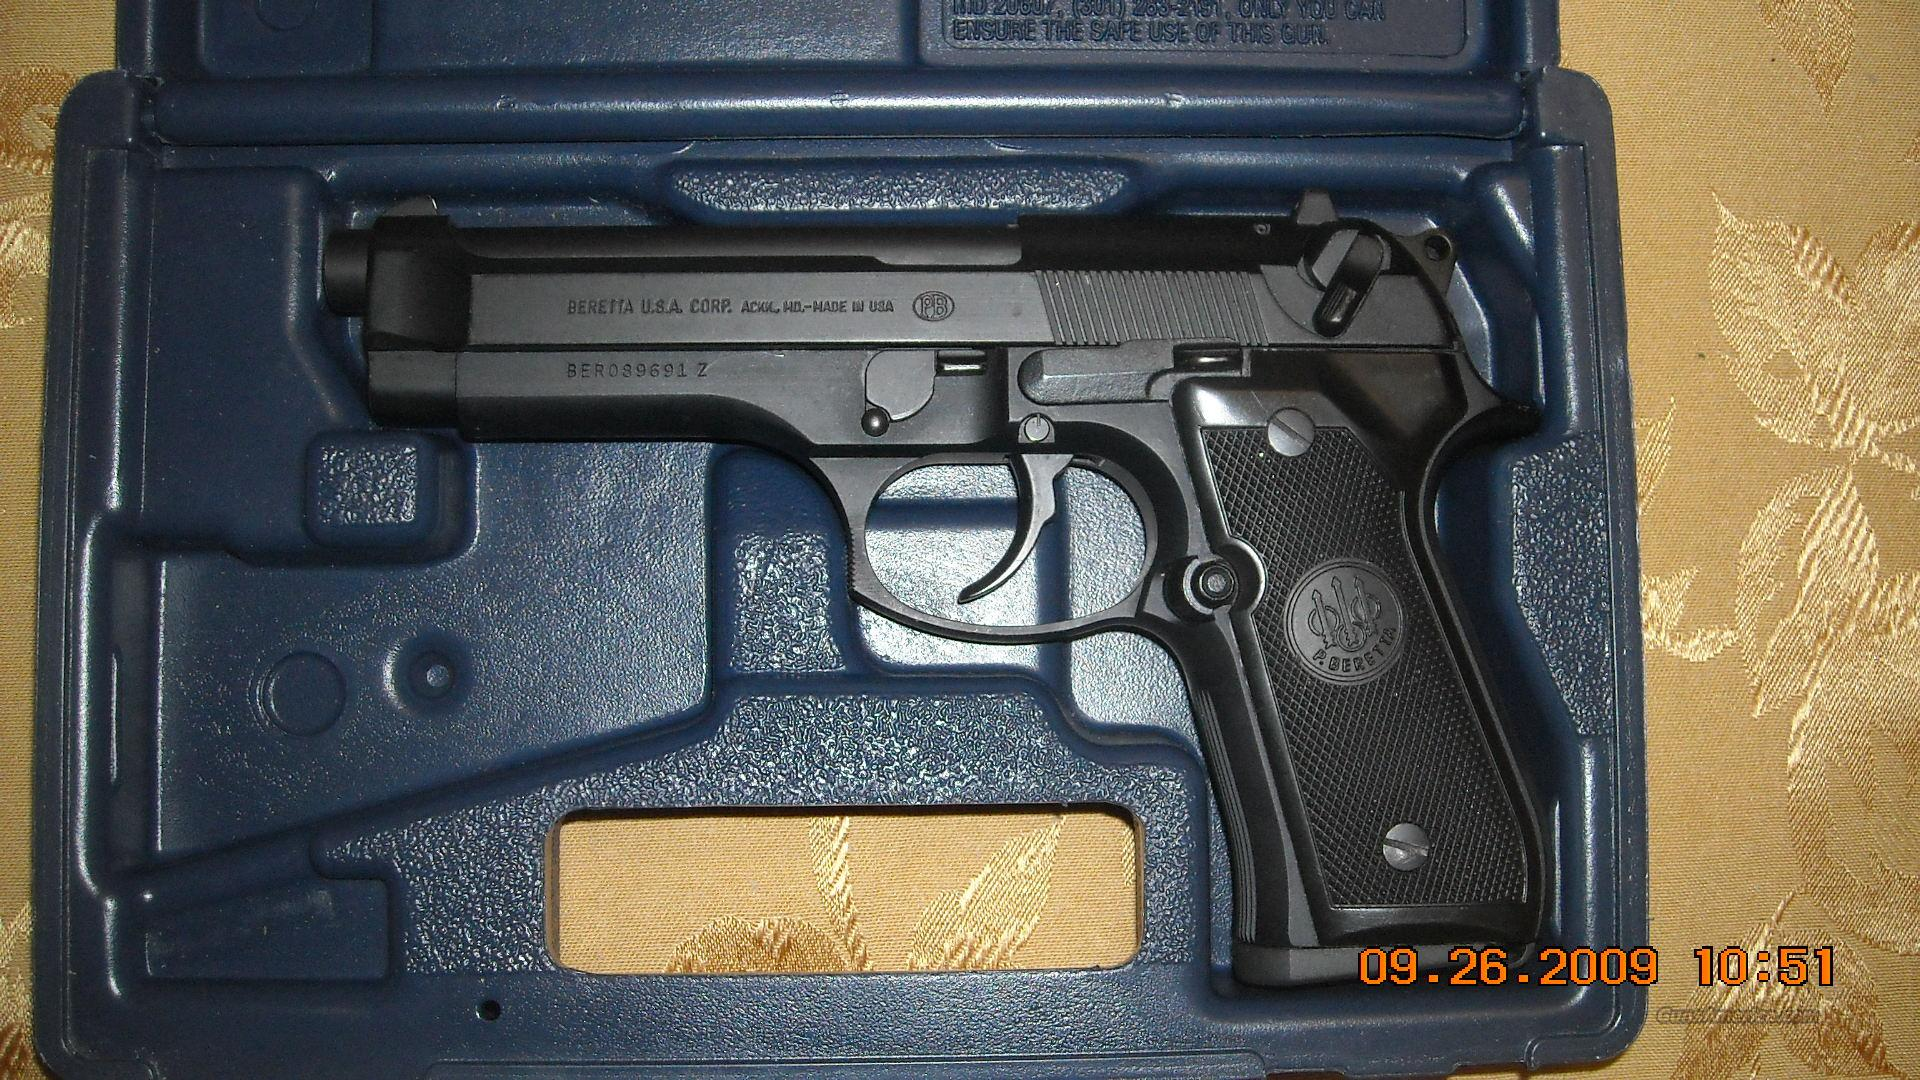 Beretta 92F-S, USA  Guns > Pistols > Beretta Pistols > Model 92 Series